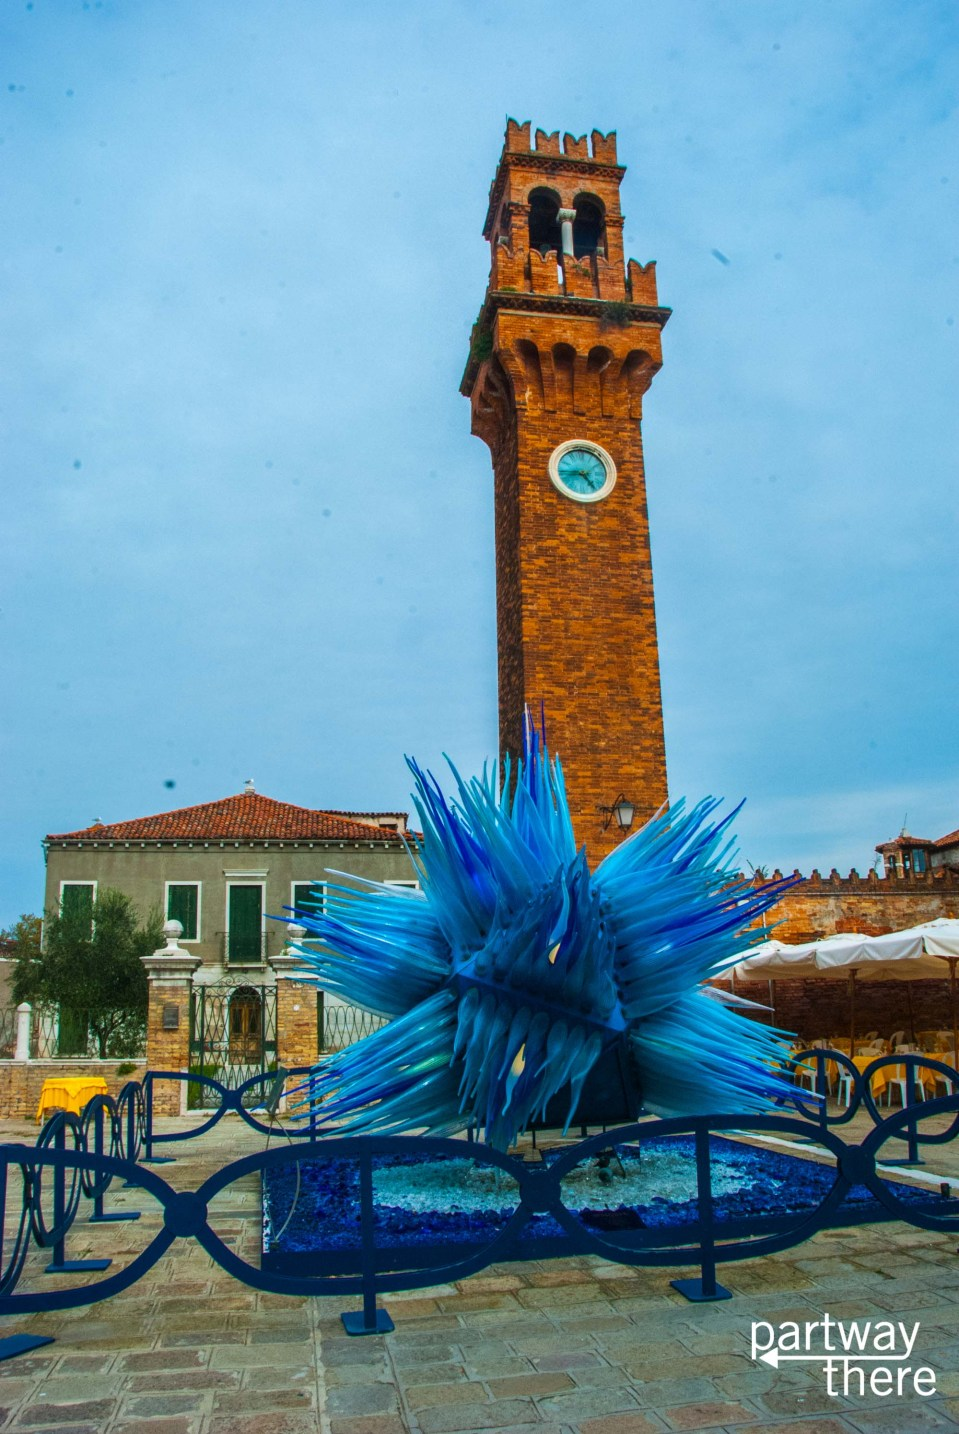 Giant glass sculpture on display in Murano, Italy